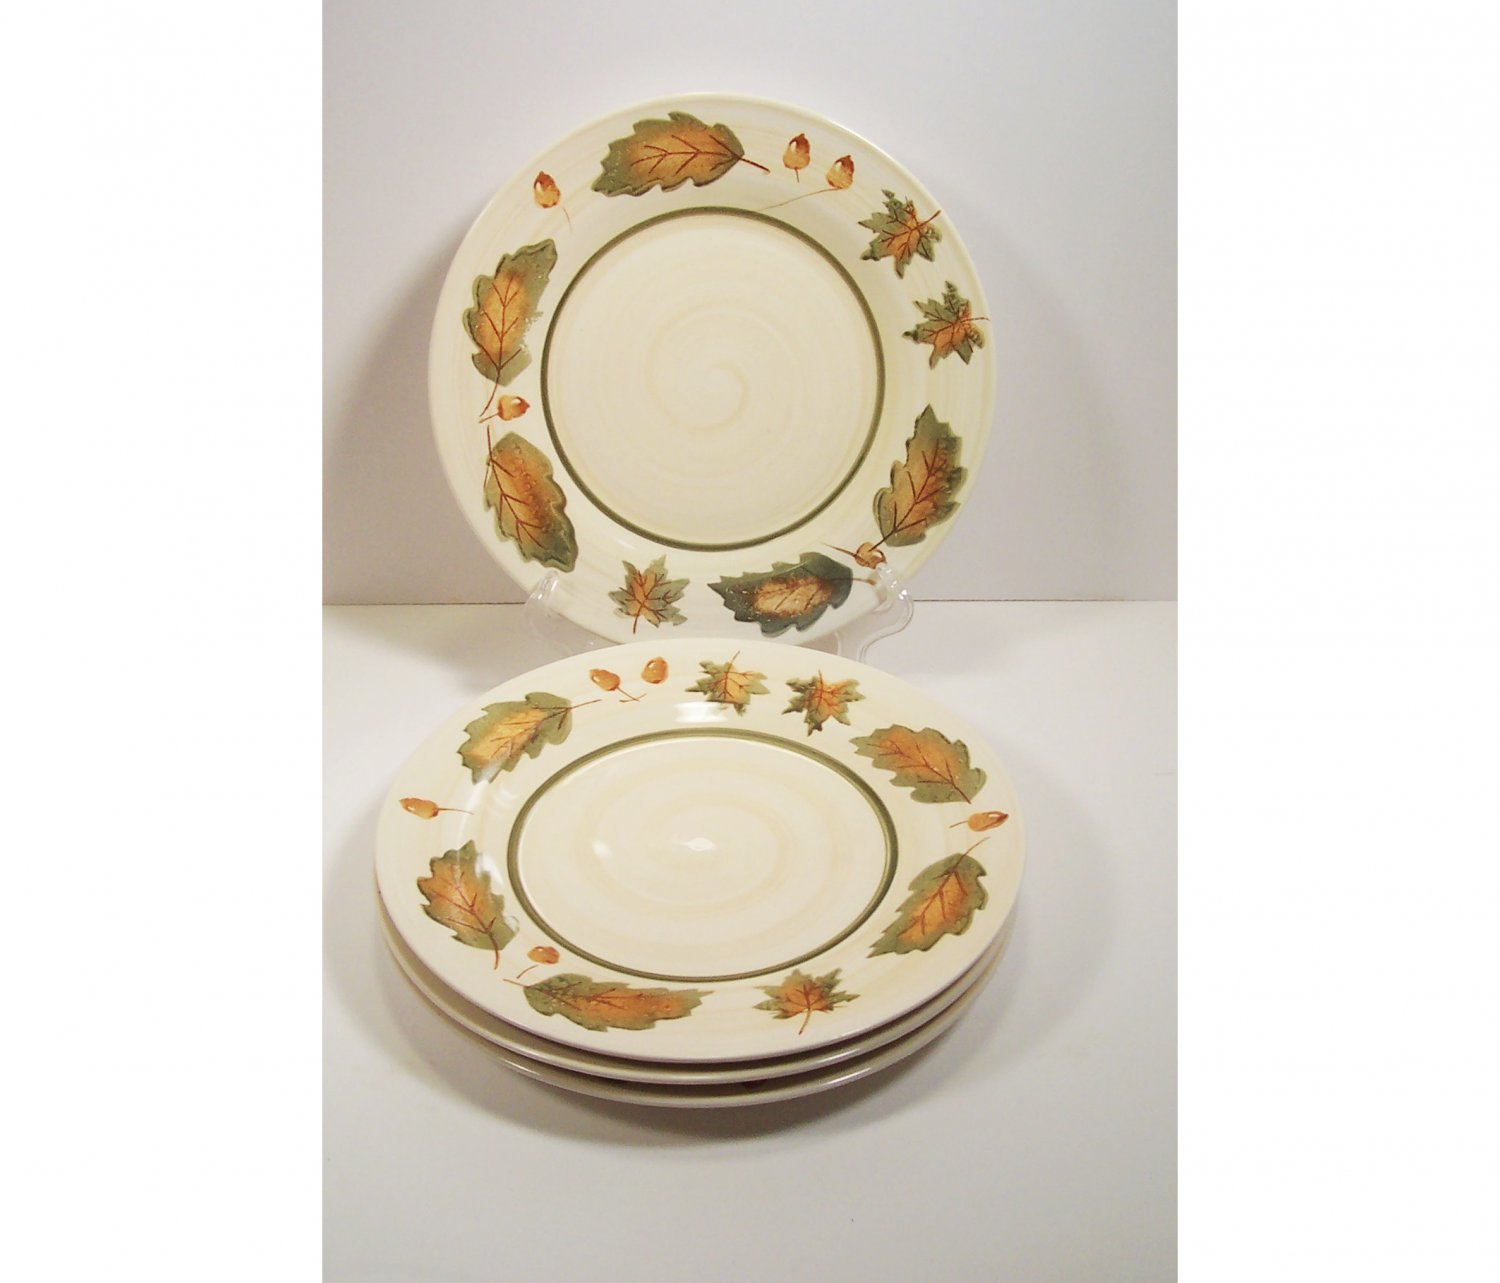 sc 1 st  SheilaDeesTreasureFinds - eCRATER & Royal Norfolk Set of 4 Dinner Plates Autumn Leaves and Acorns